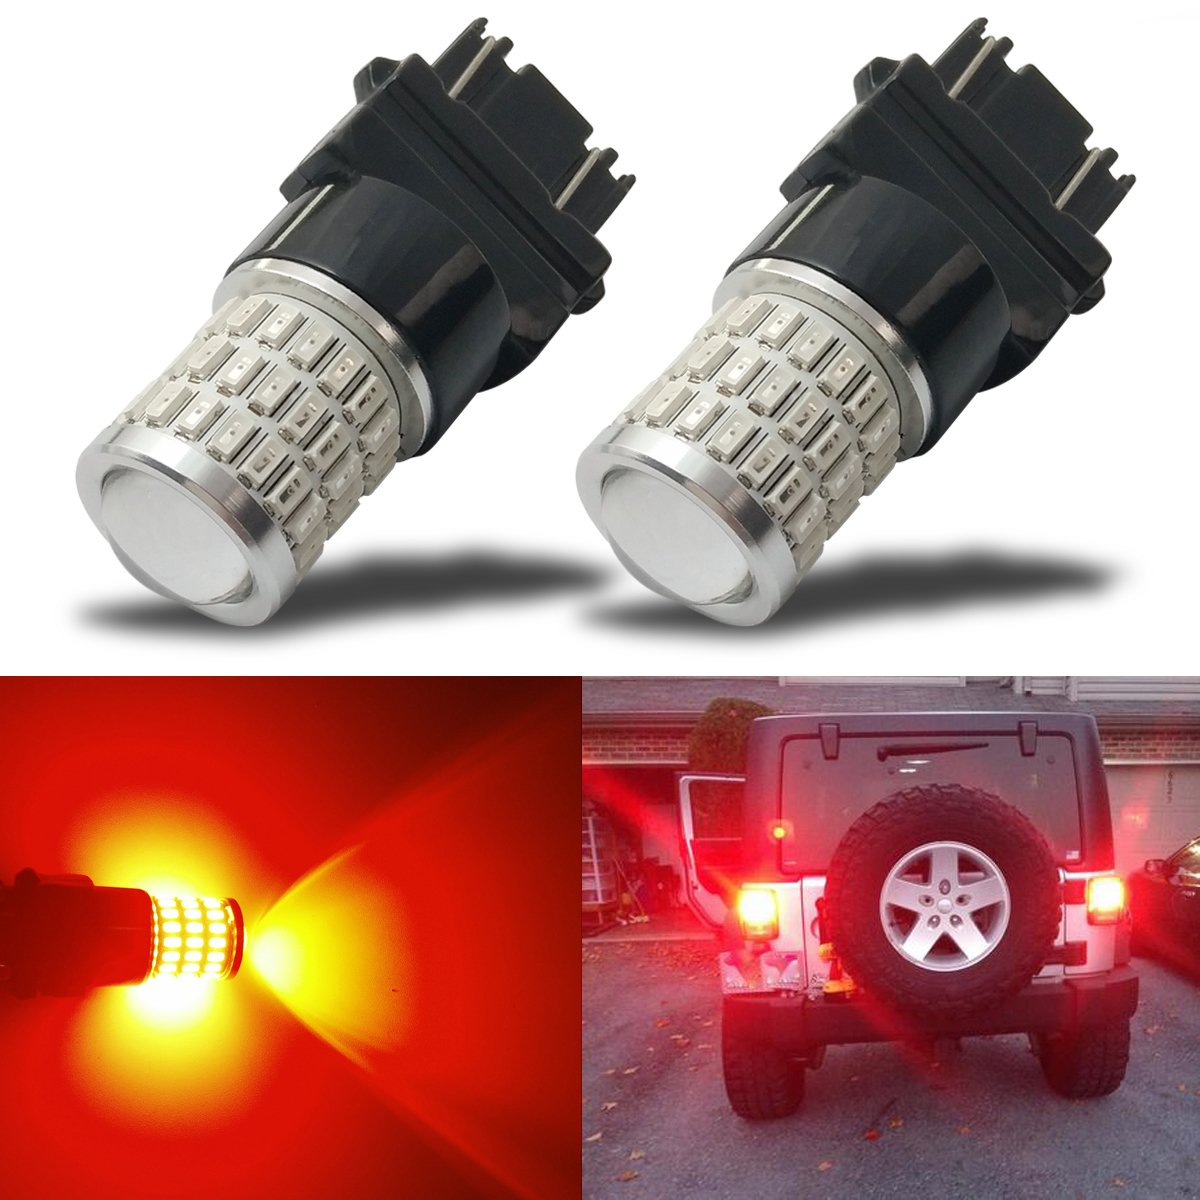 iBrightstar Newest 9-30V Super Bright Low Power Dual Brightness 3156 3157 3056 3057 LED Bulbs with Projector Replacement for Tail Brake Lights,Brilliant Red by iBrightstar (Image #1)